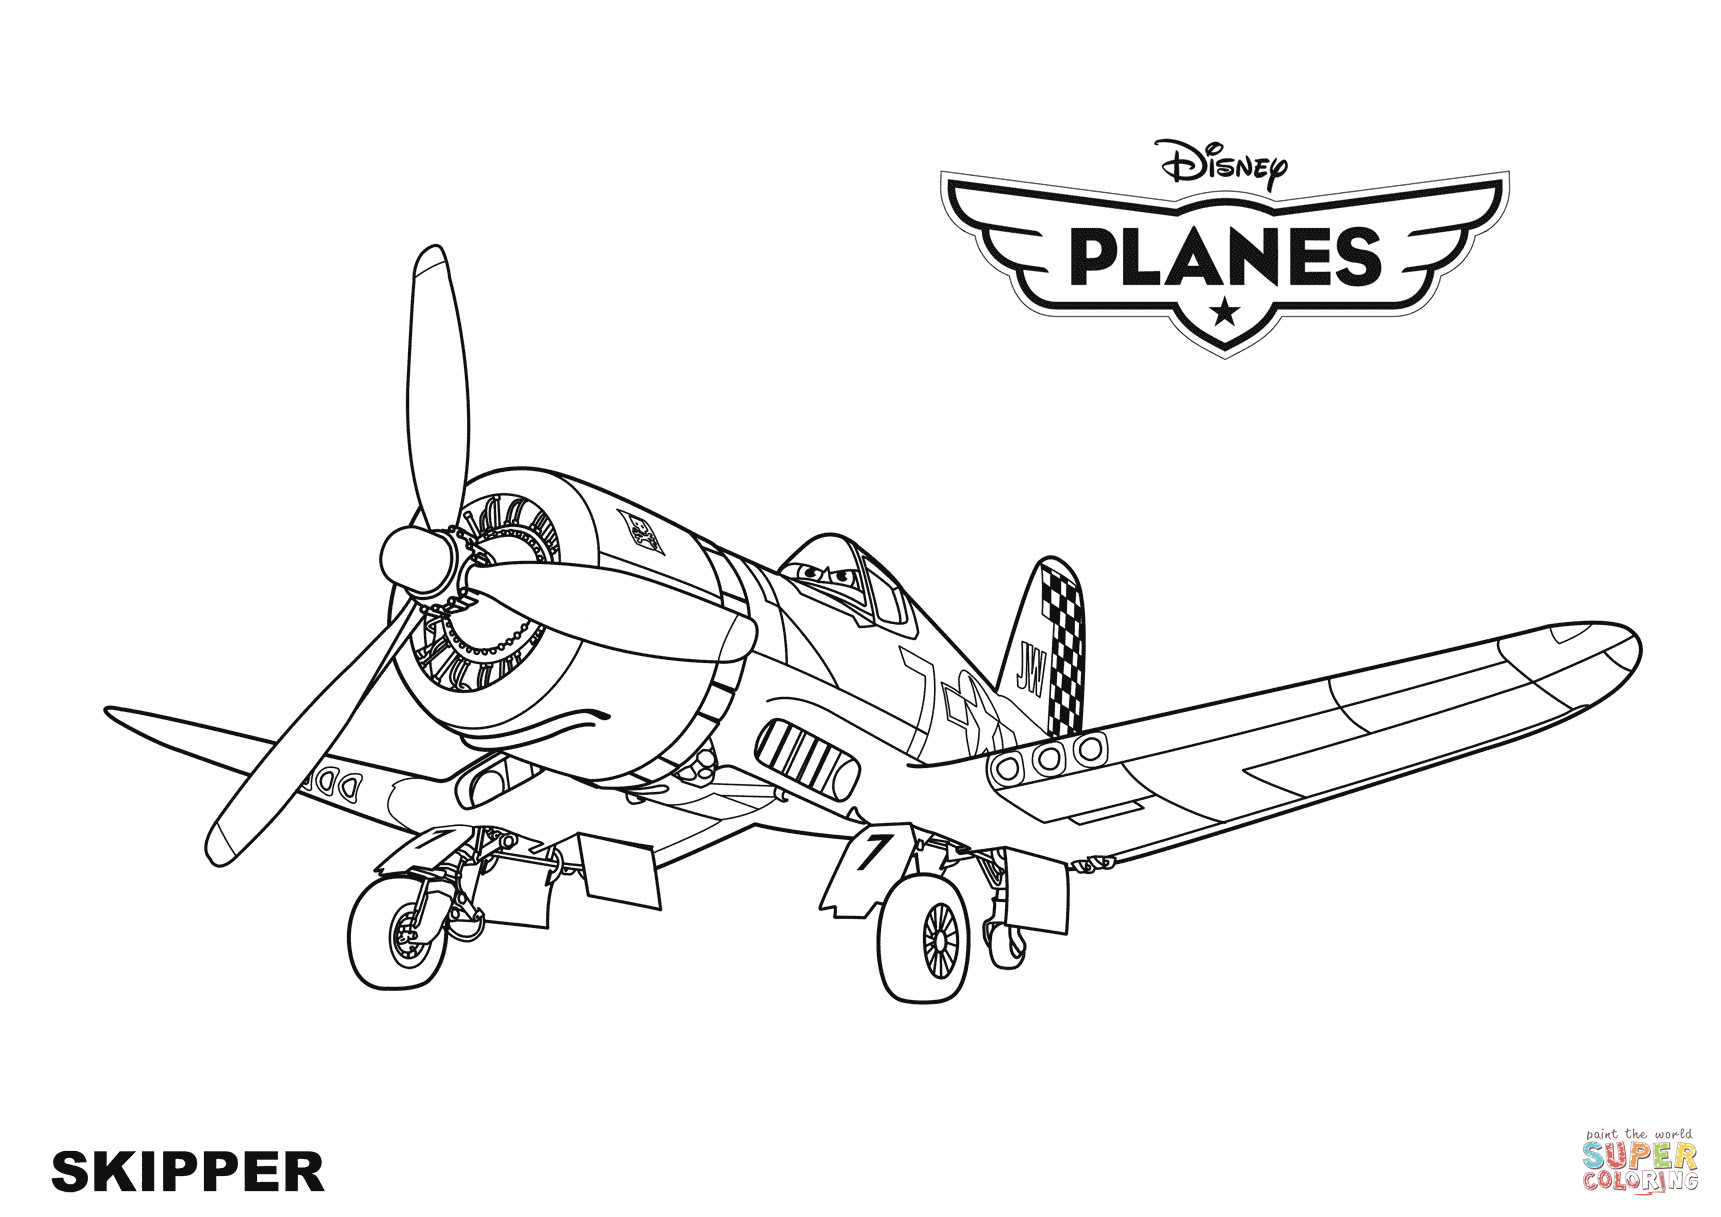 Best ideas about Disney Planes Coloring Pages For Kids . Save or Pin Disney Planes Skipper coloring page Now.